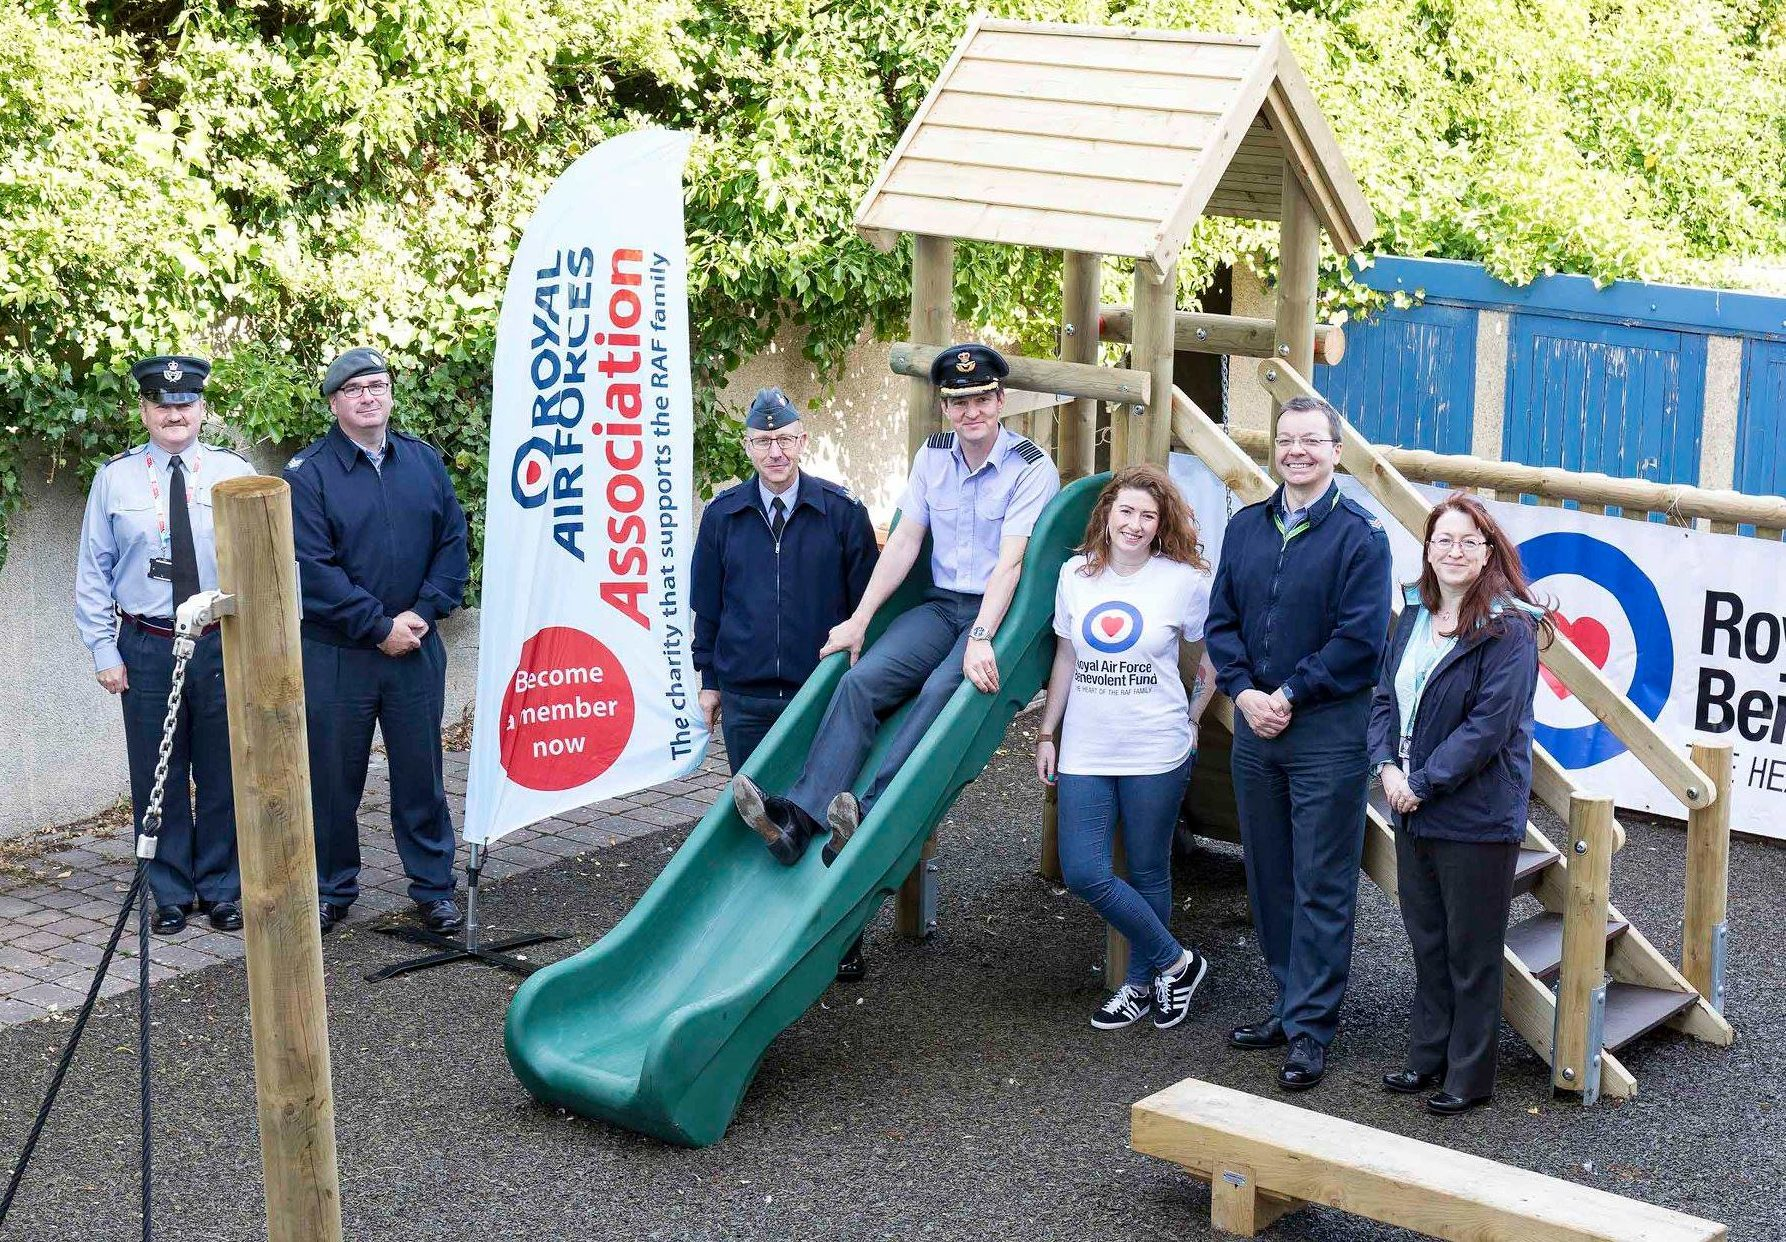 The refurbishment of the play area at the Station's welfare properties.